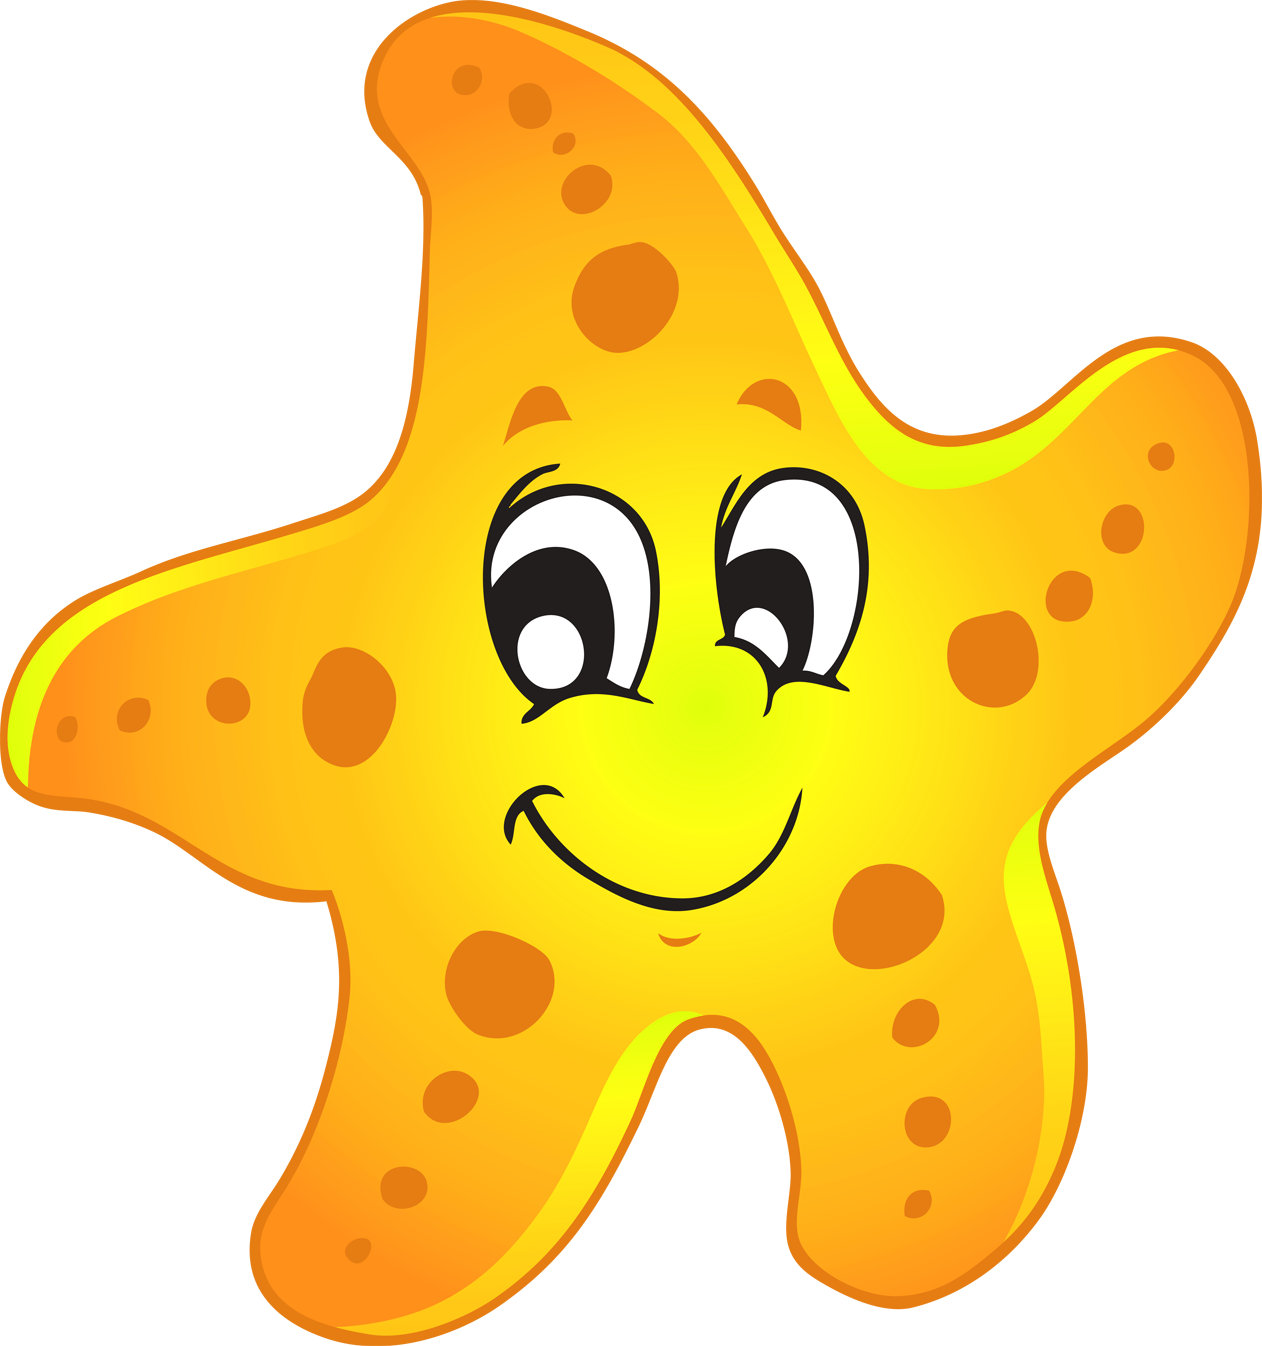 Cute fish clipart free clip art Star fish clipart - Clipart Collection | Cartoon starfish clipart ... clip art